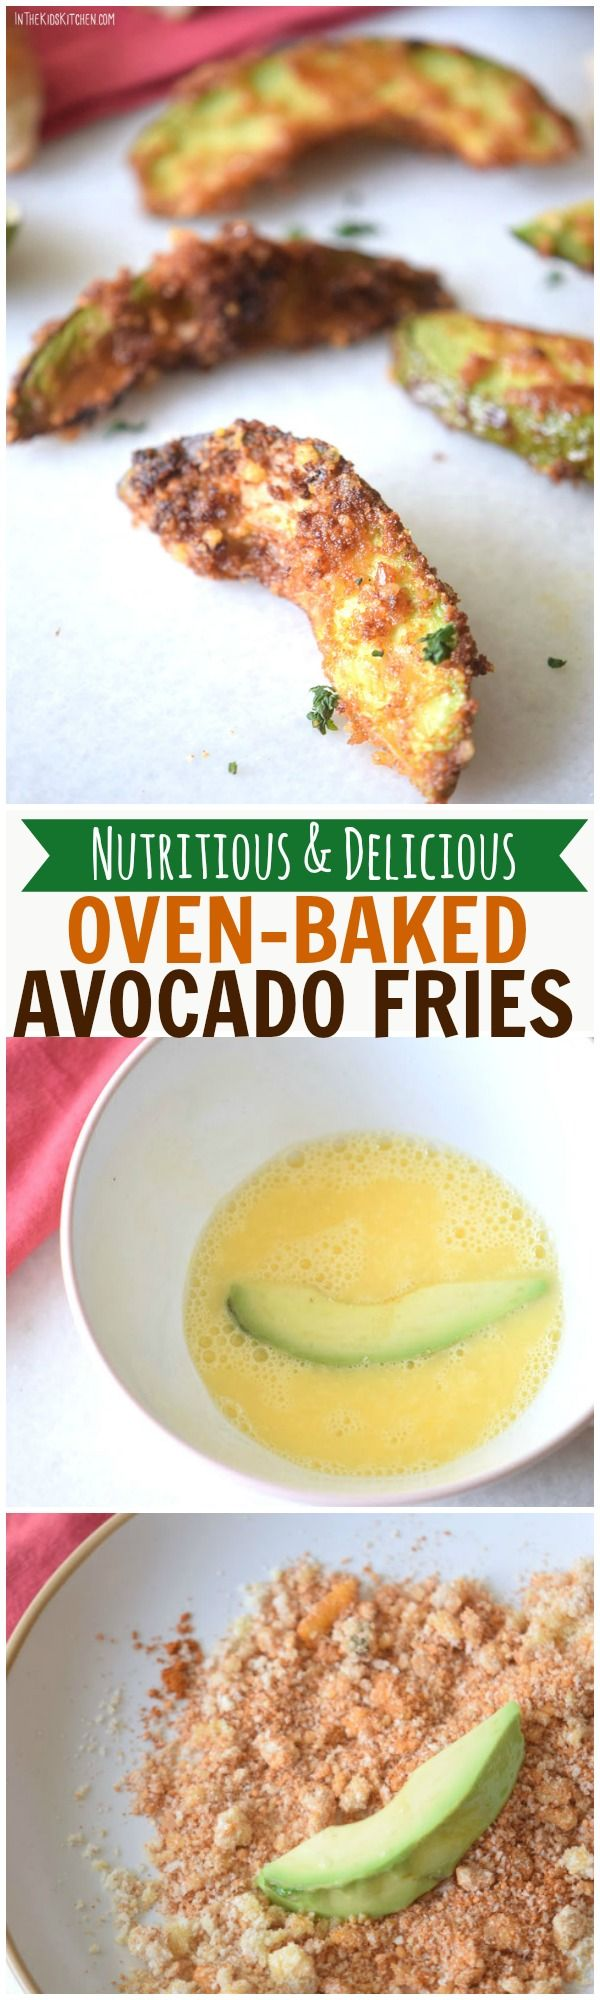 ... Avocado Fries on Pinterest | Avocado Fries, Avocado and Chipotle Ranch